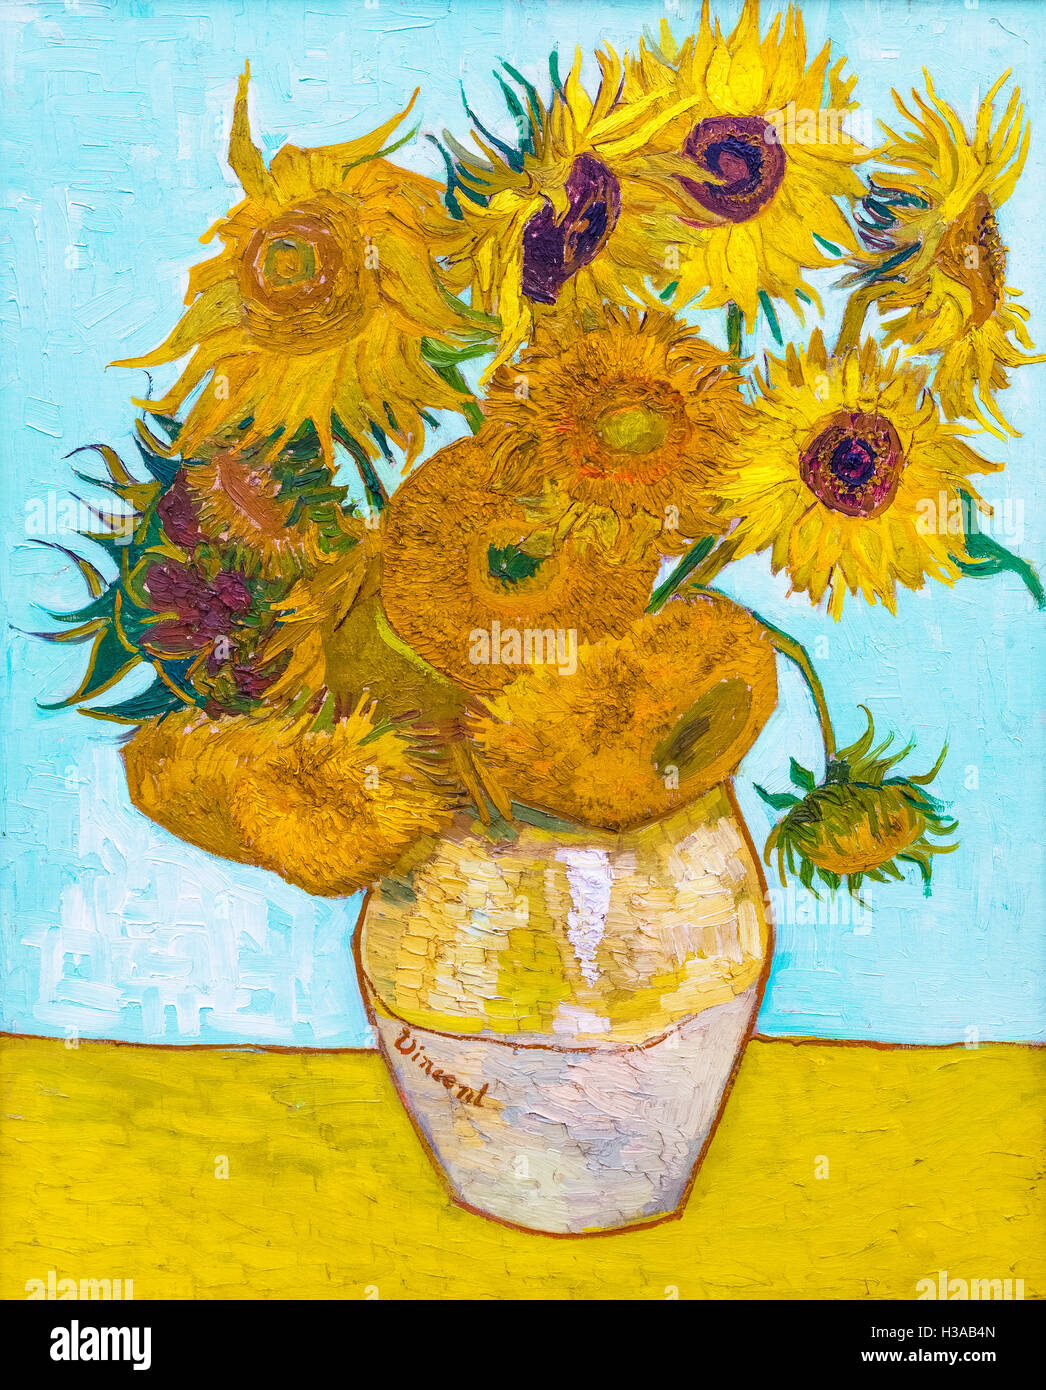 Vincent Van Gogh Paintings Sunflowers Sunflowers By Vincent Van Gogh 1853 1890 Oil On Canvas